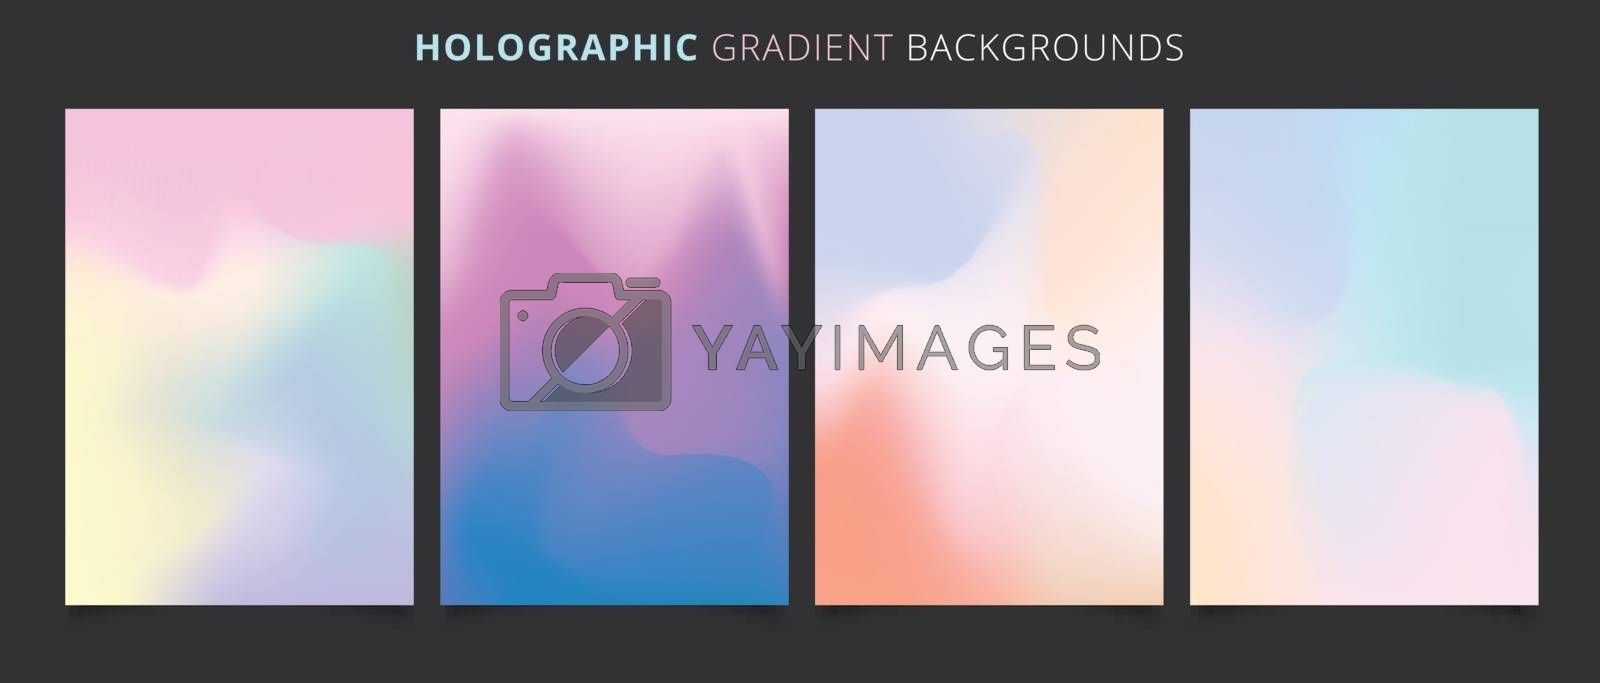 Template holographic gradients colorful background. Vector illustration. You can use for your websites, blogs, banners, posters, for prints on clothes and other things, packaging etc.